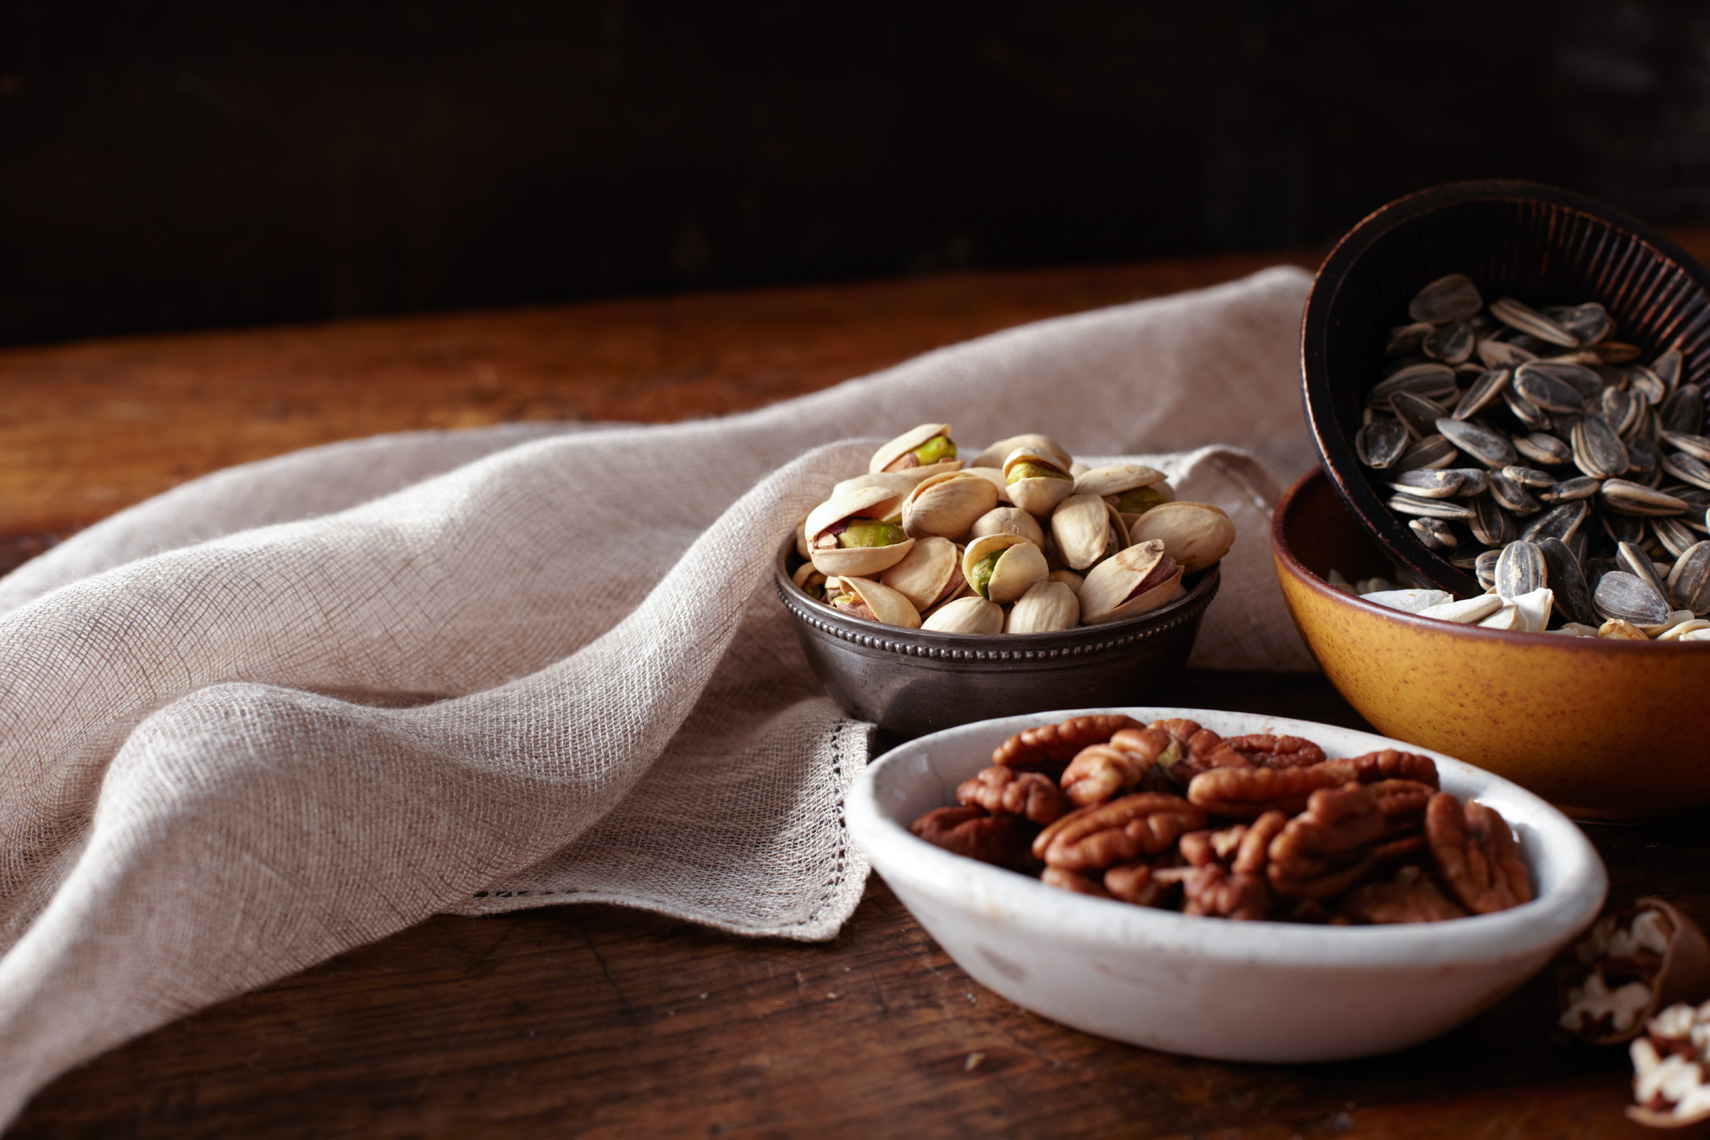 small bowls with pistachios, pecans and sunflower seeds